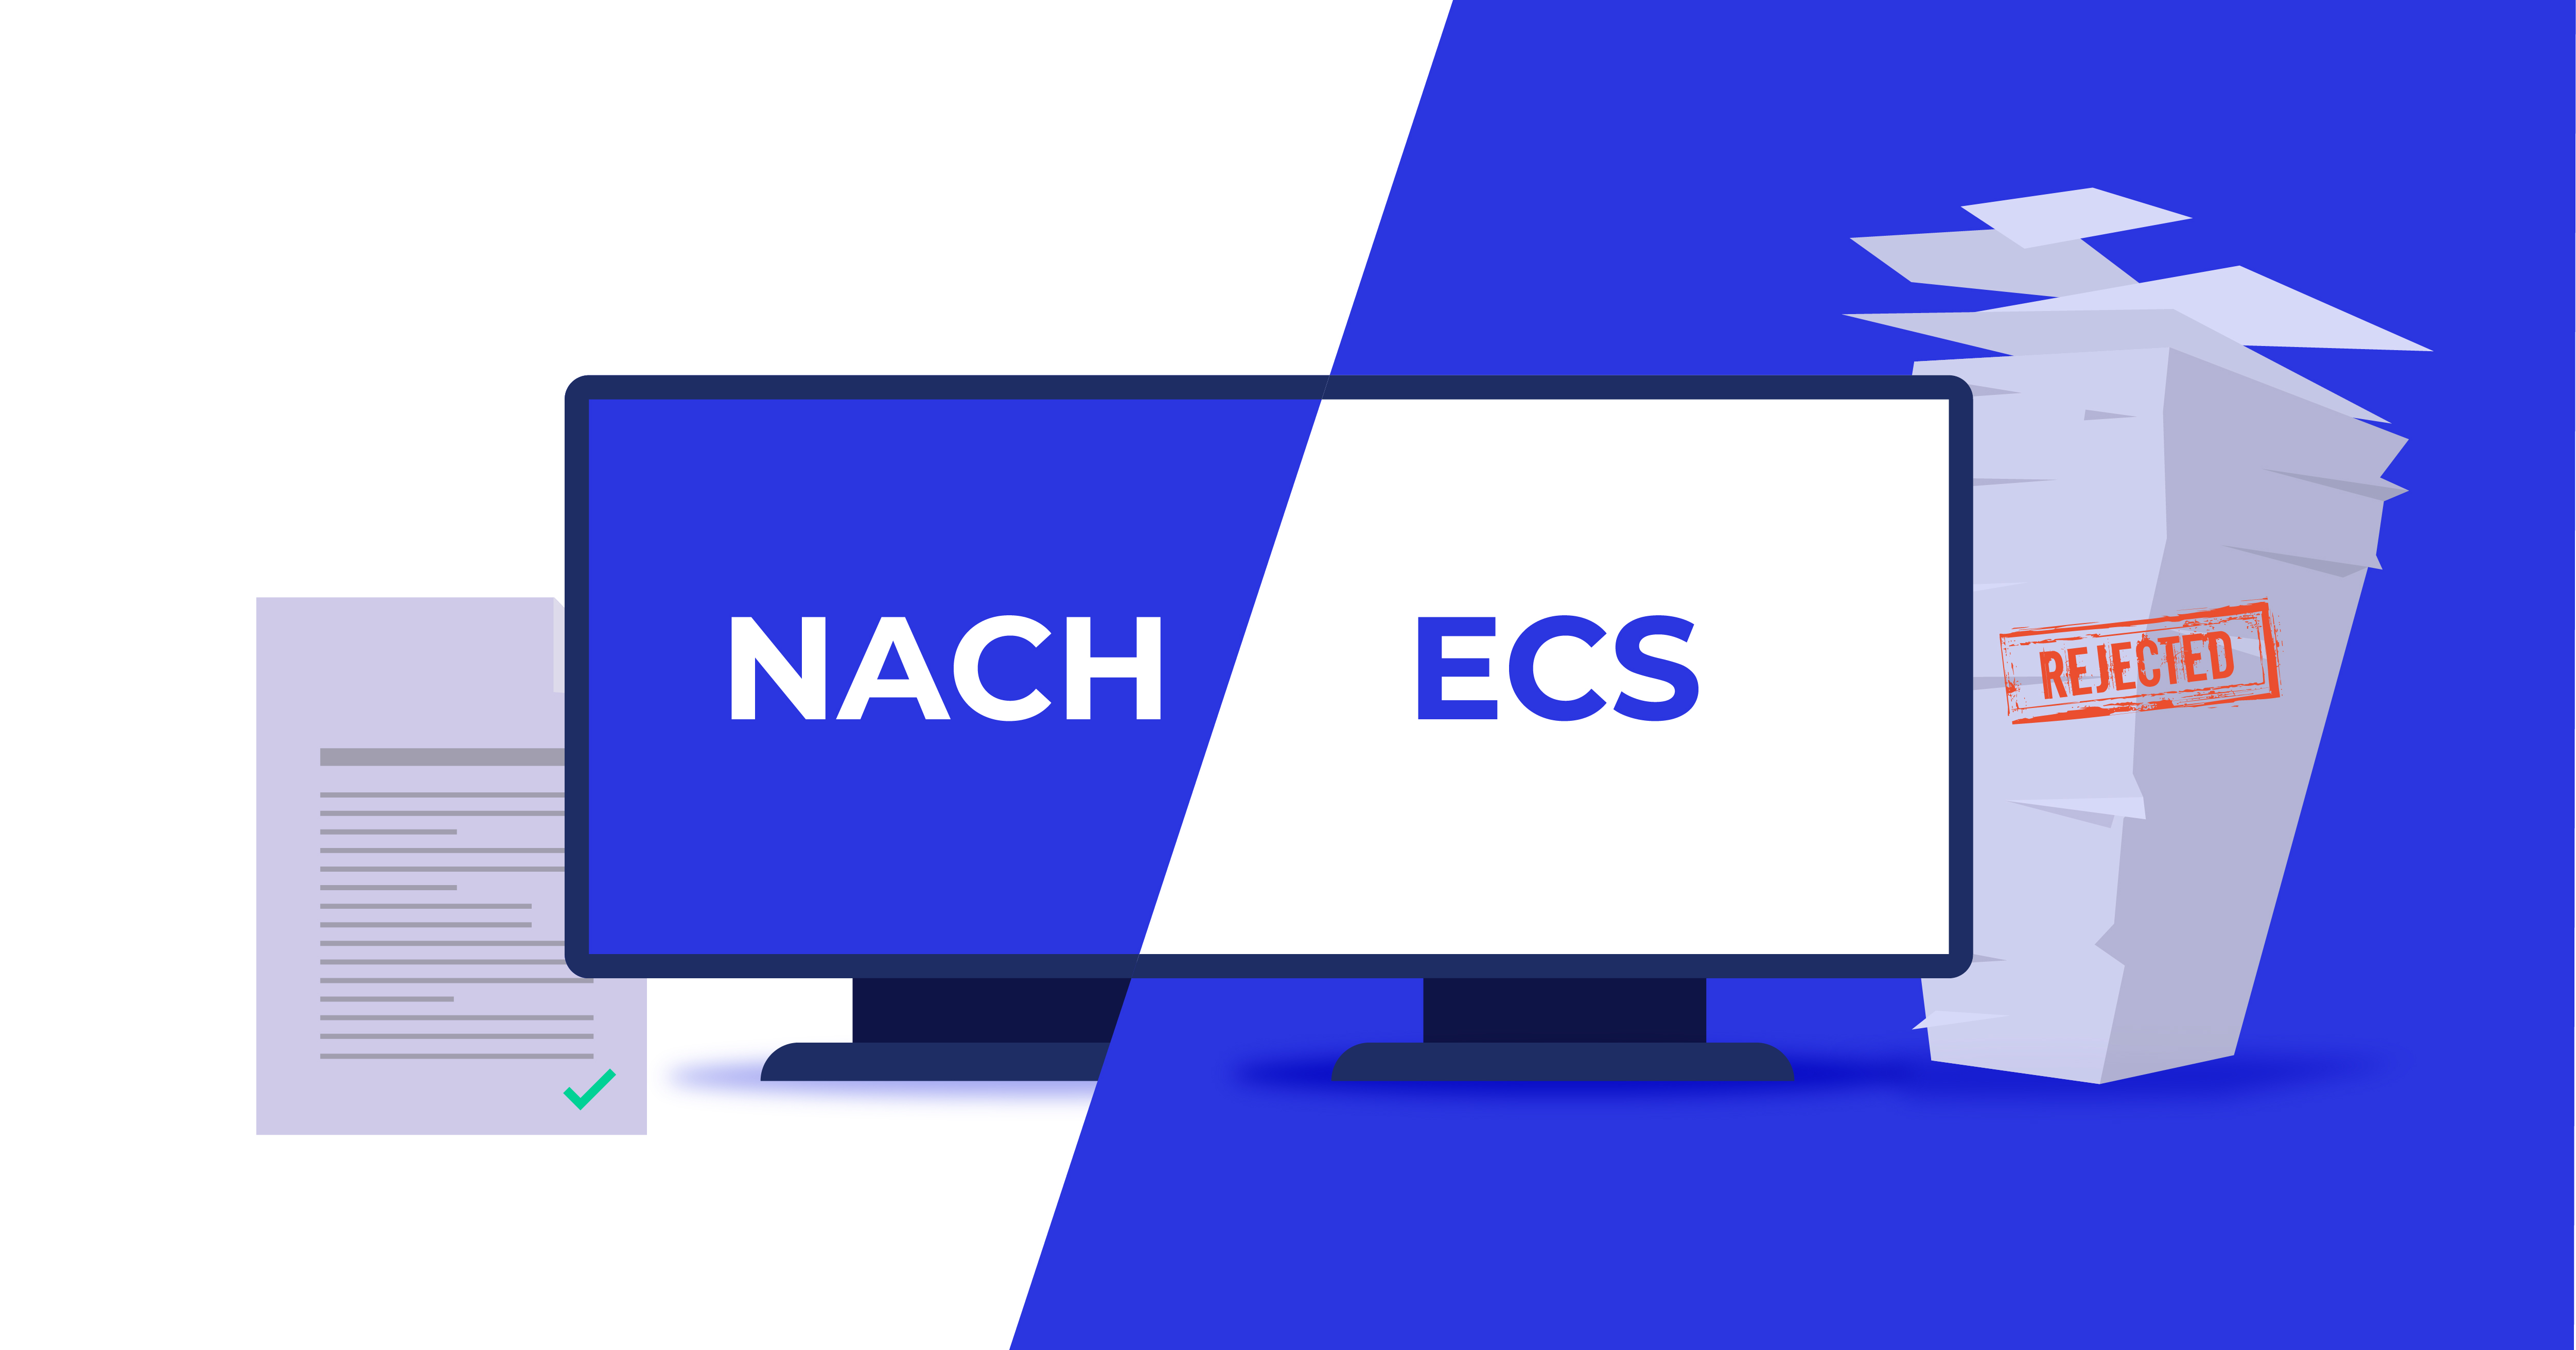 Difference-between-NACH-and-ECS